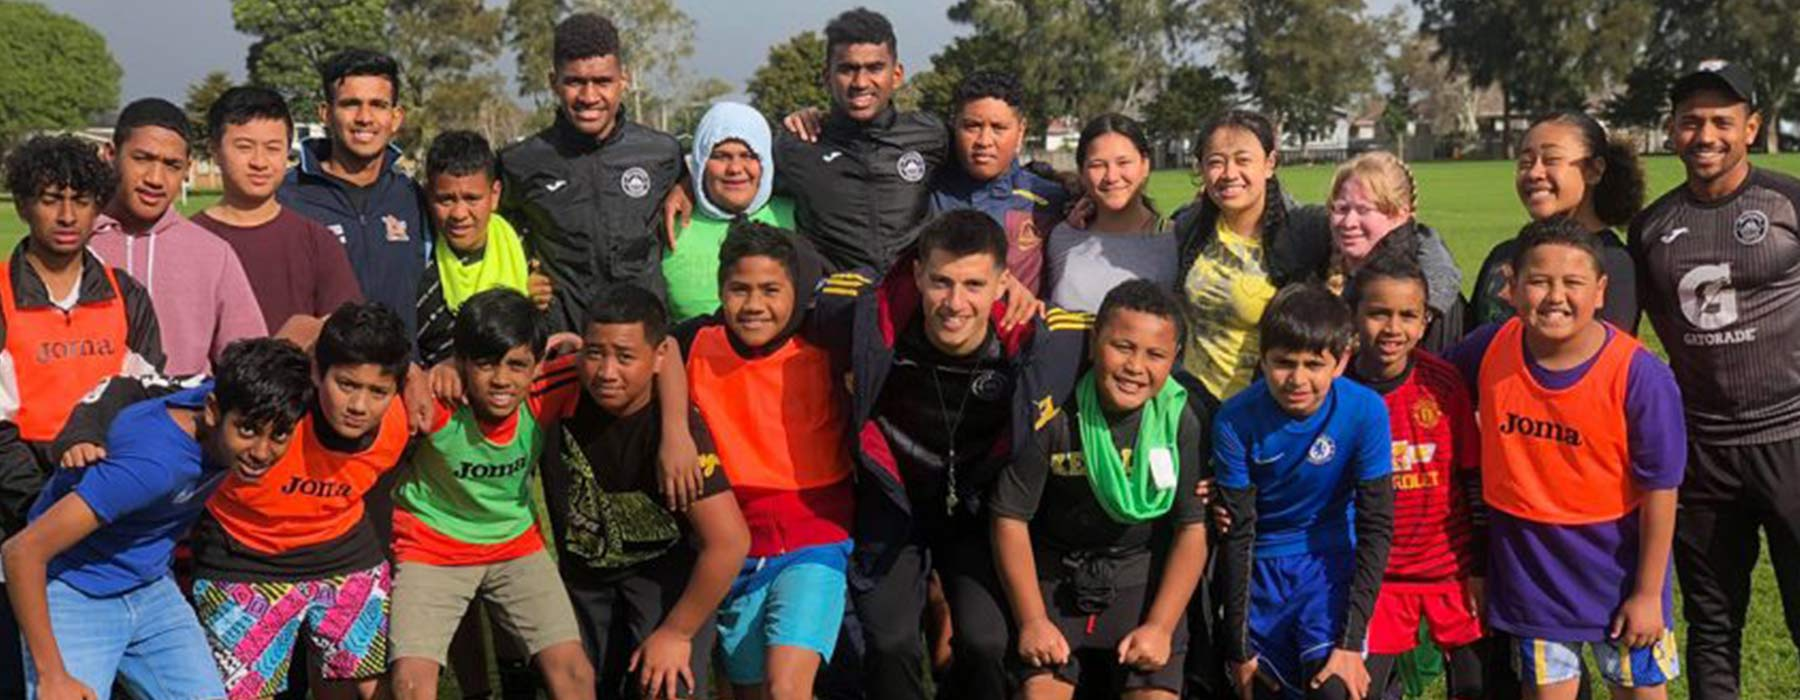 Thousands of young South Aucklanders will get their first experience of football activities with Hungerball